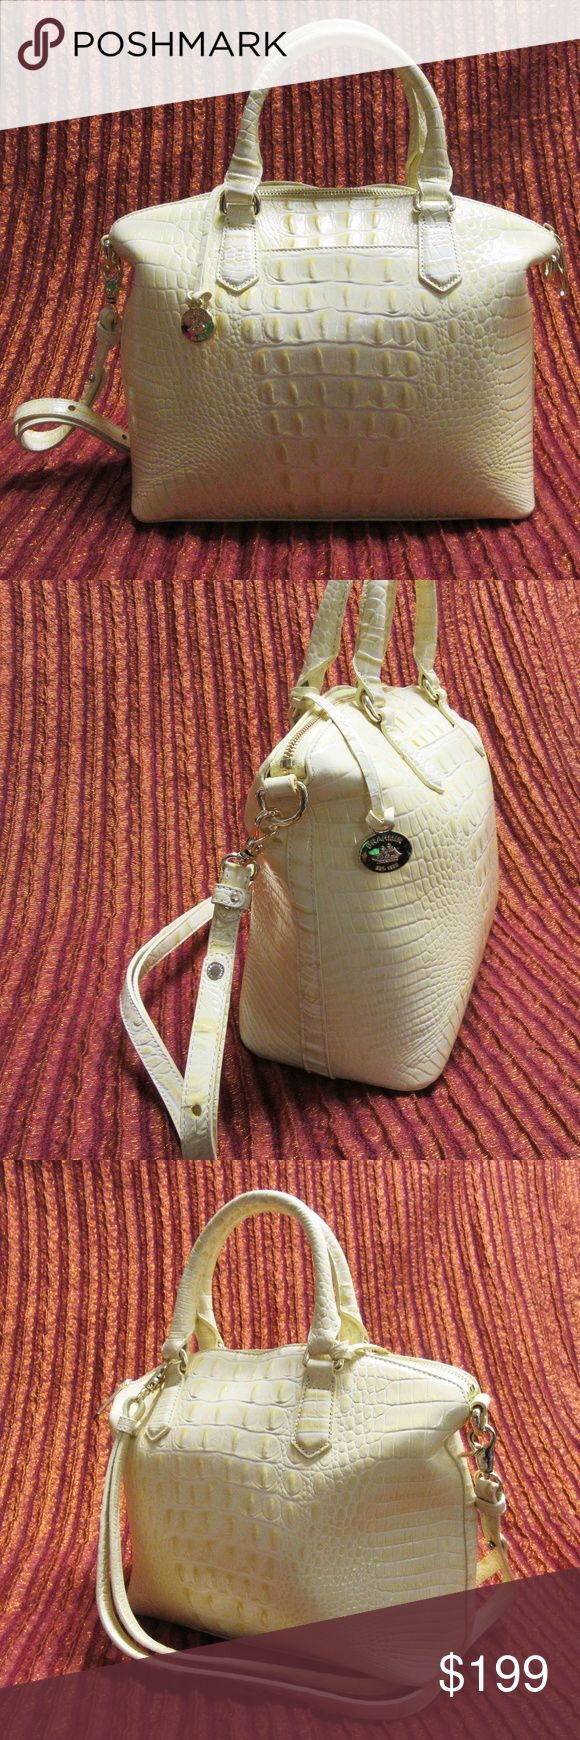 Brahmin Crocodile-embossed Leather Shoulder Bag Brahmin Crocodile-embossed Leather Shoulder Bag - NWOT in pastel yellow, perfect for summer outings and all occasions. Comes with detachable/adjustable cross-body strap and dust cover bag. Never been carried. Bags Shoulder Bags